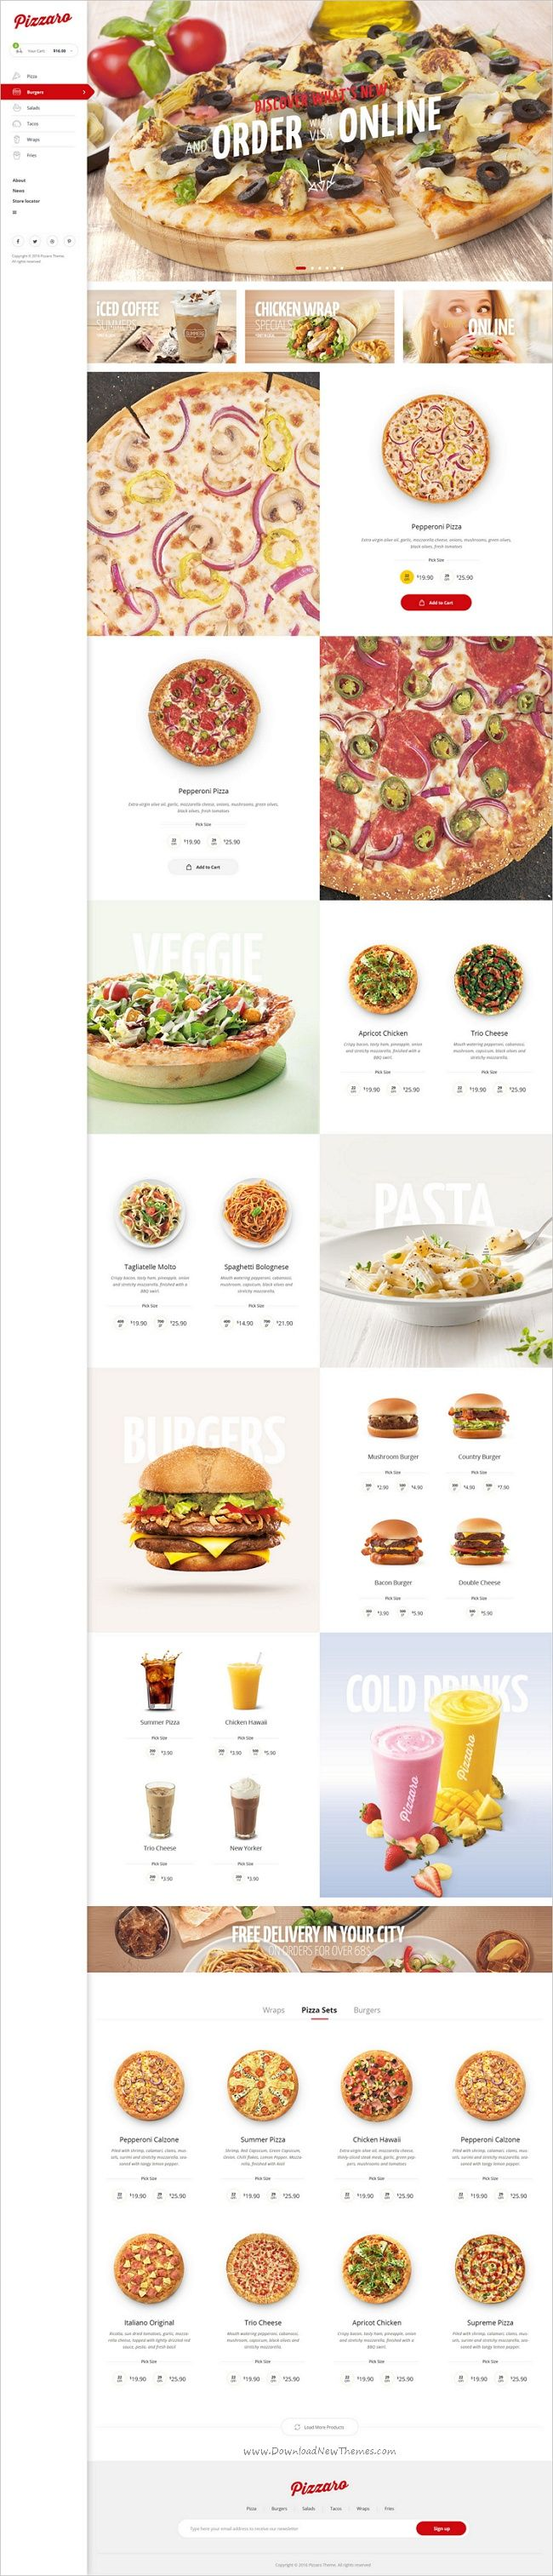 Pizzaro is modern and elegant design #responsive 7in1 #WordPress theme for fast #food and restaurant websites download now➩ https://themeforest.net/item/pizzaro-food-online-ordering-woocommerce-theme/19209143?ref=Datasata